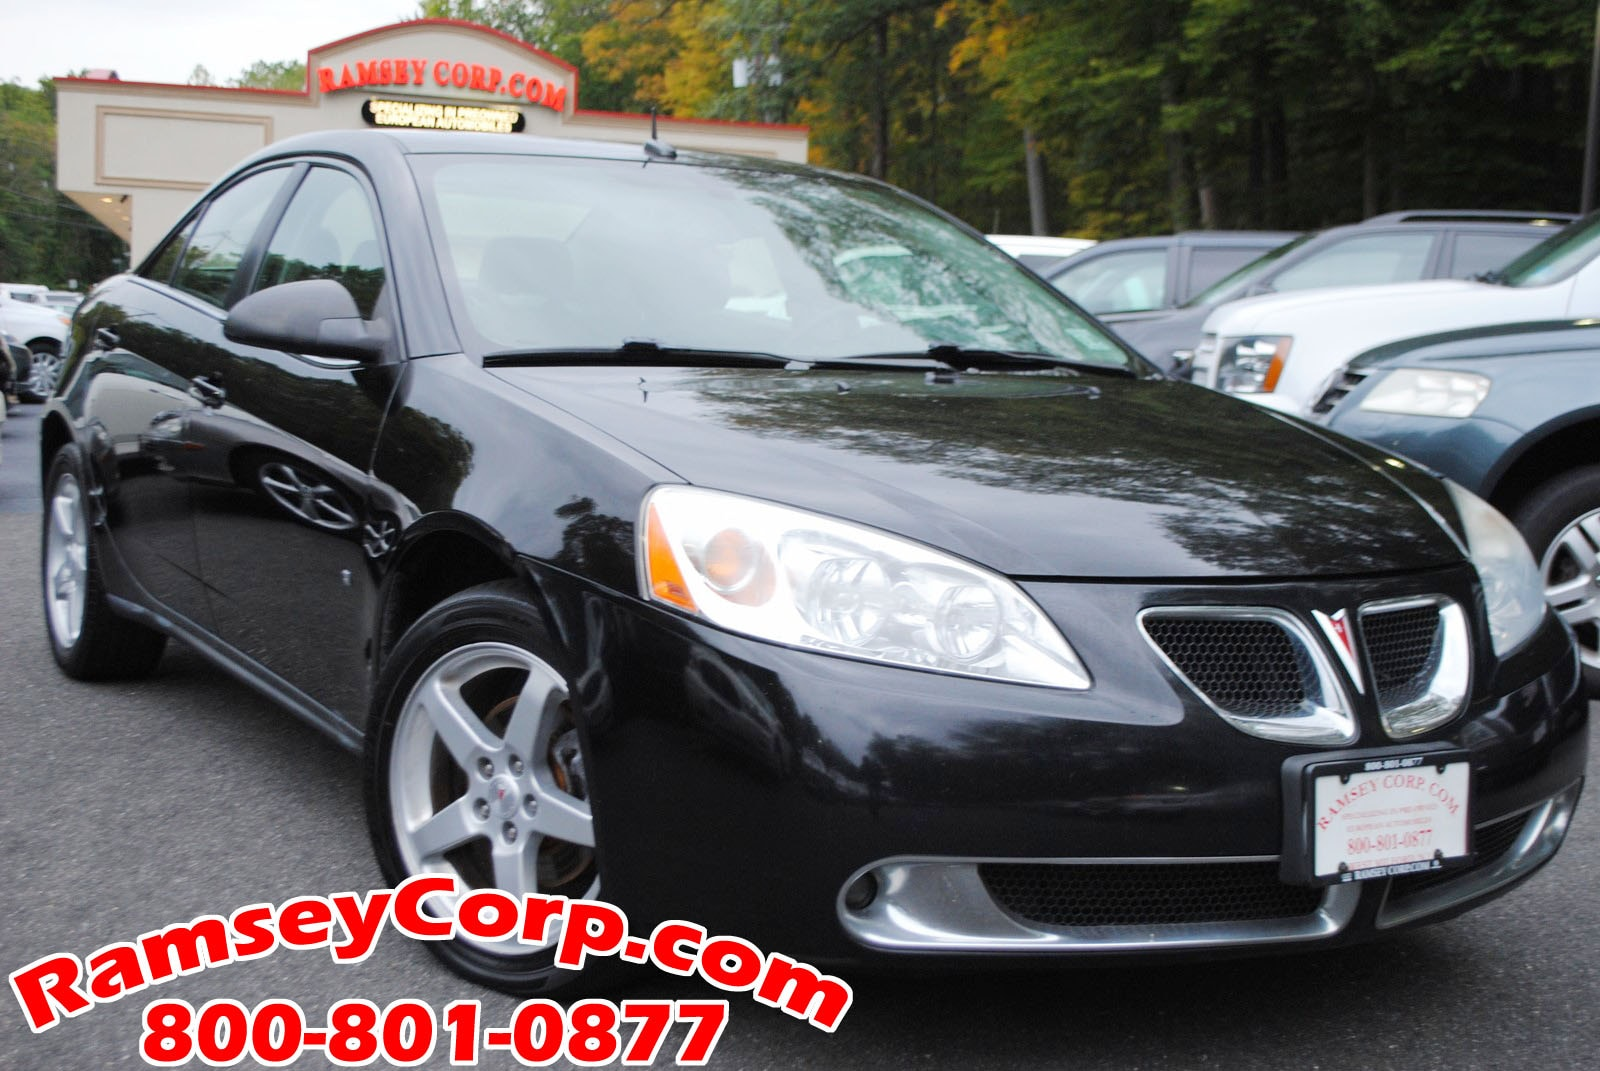 Used 2008 Pontiac G6 For Sale West Milford Nj